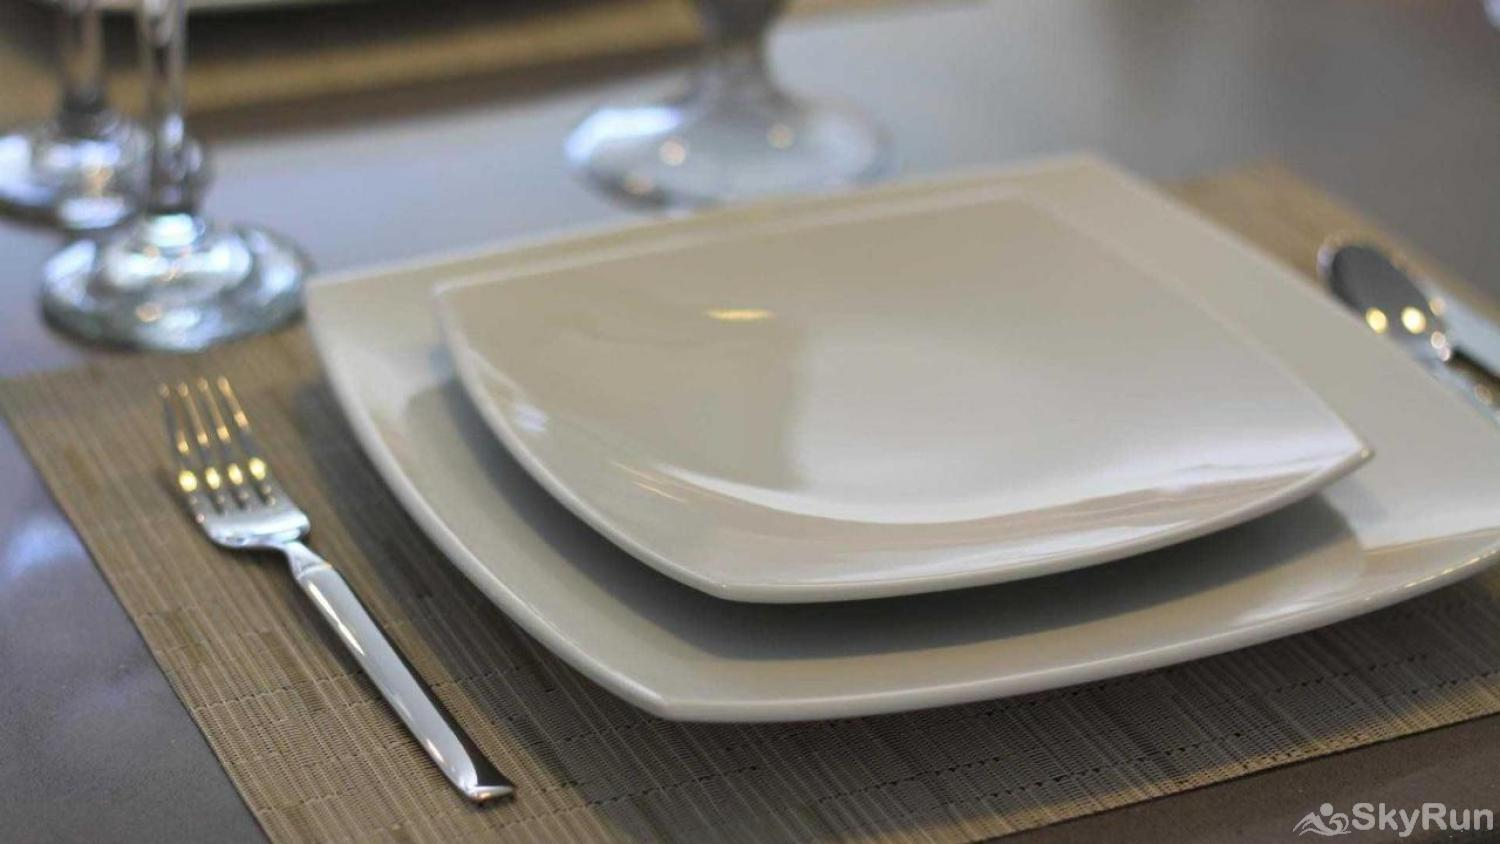 Modern Beach Anah 006D | Playa del Carmen Luxury dinning ware and glassware in gourmet kitchen